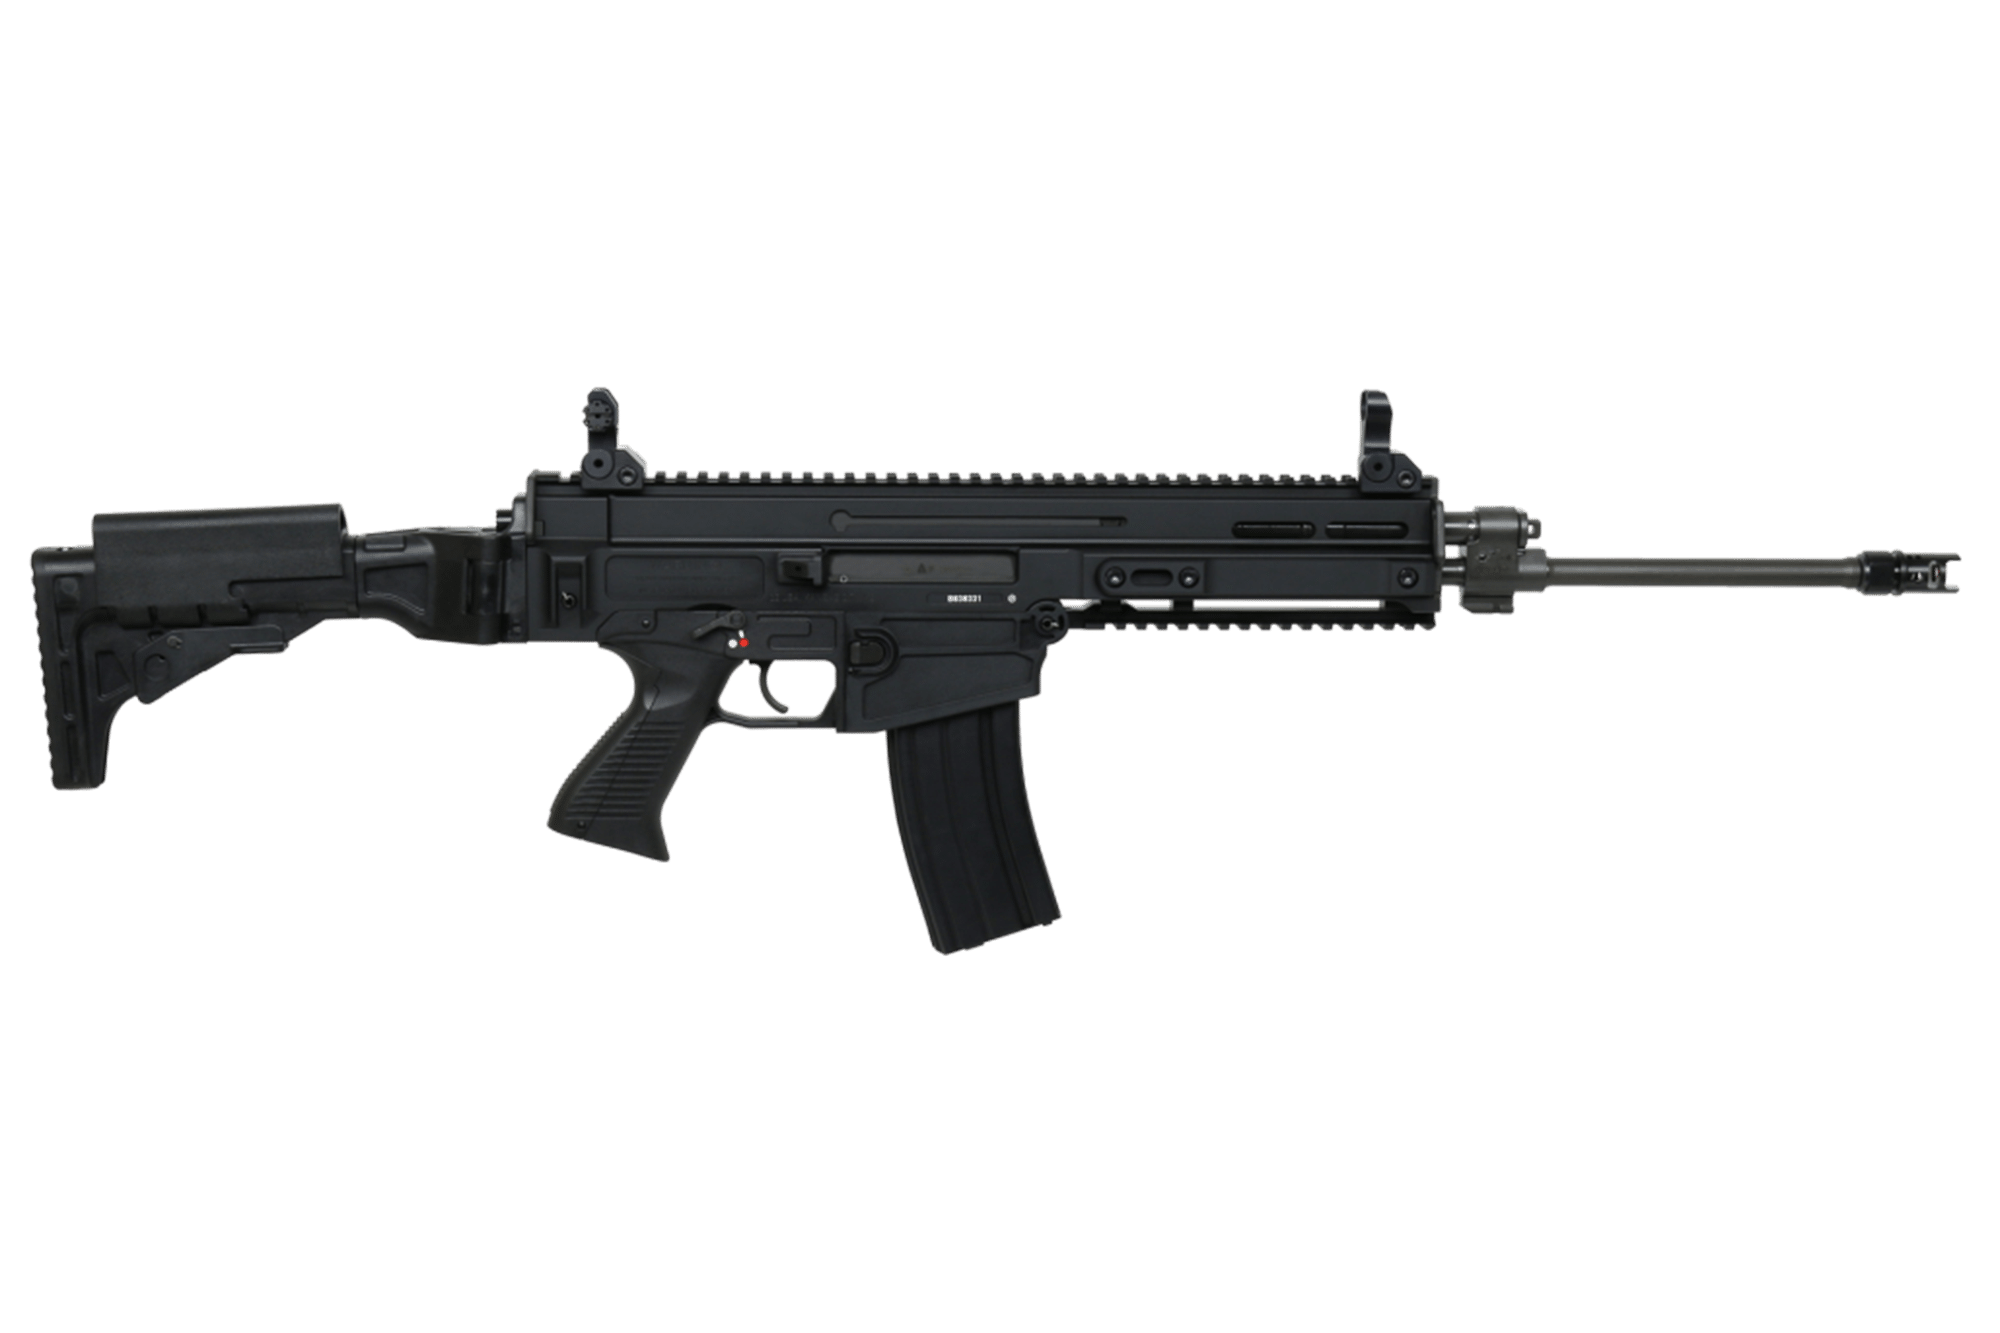 jpg download guns transparent rifle #97358770